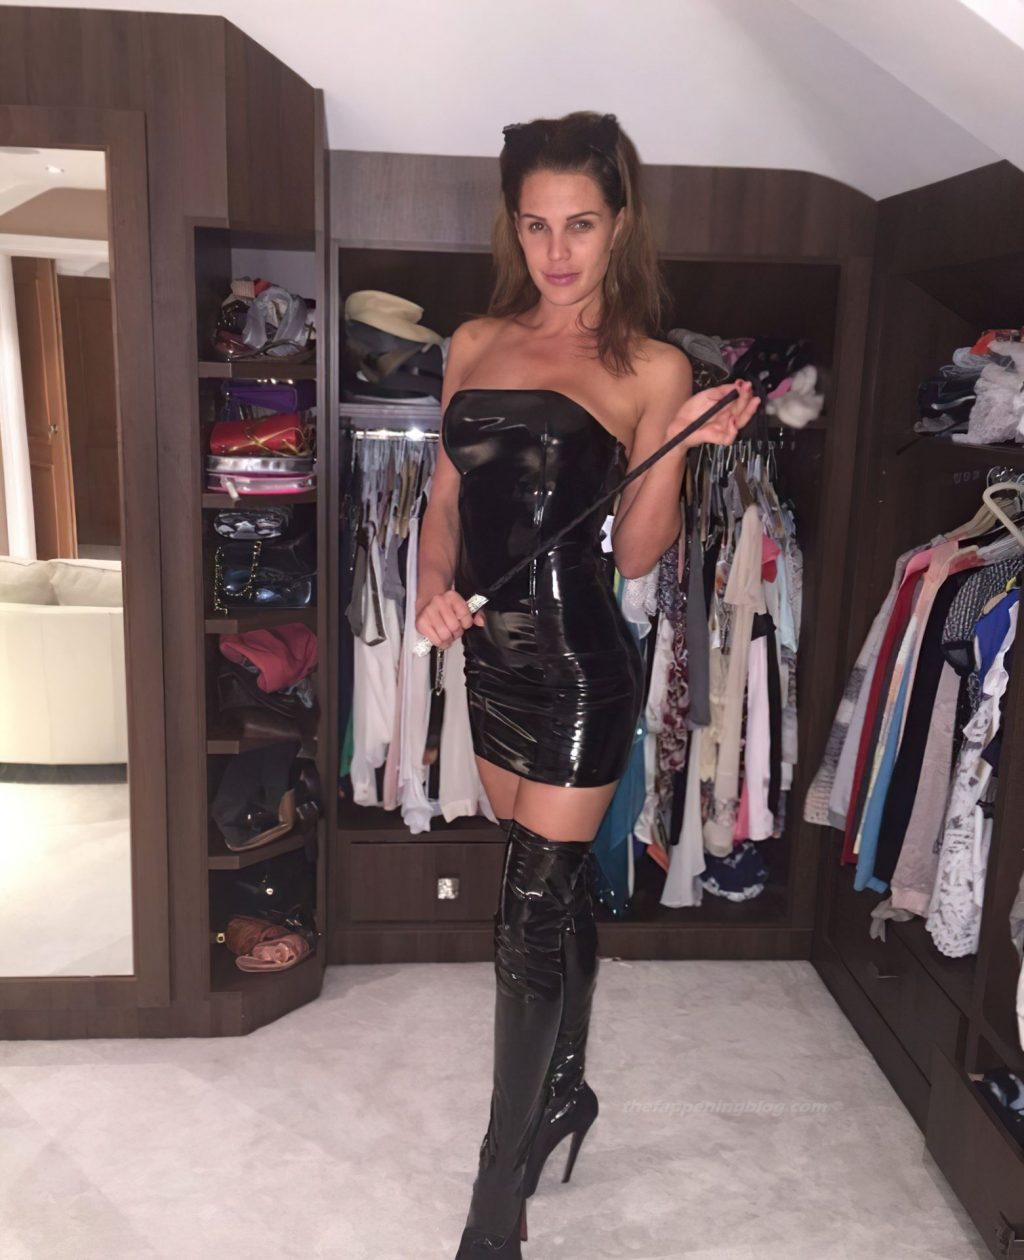 Danielle Lloyd Nude Leaked The Fappening (7 Photos)